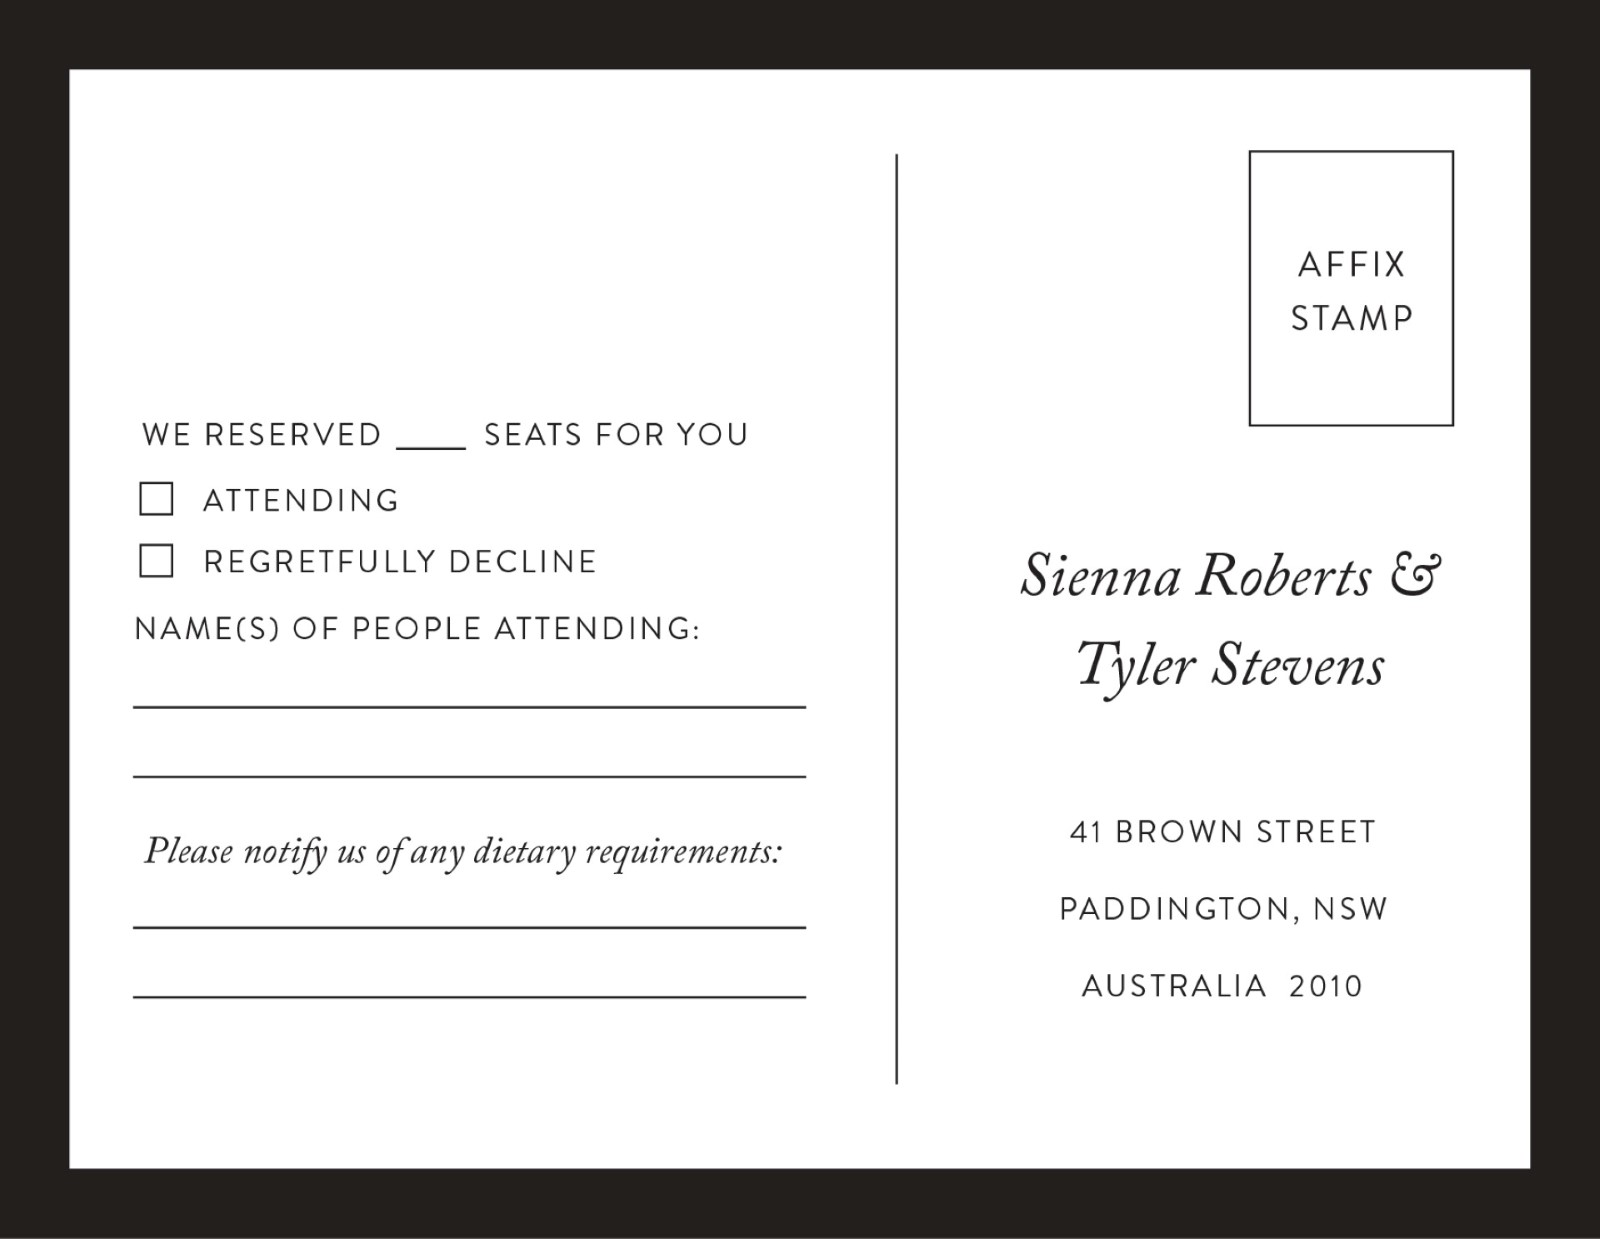 Rsvp Cards Australias Best Local Designs Printed By Paperlust RSVP 01 Wedding Wording